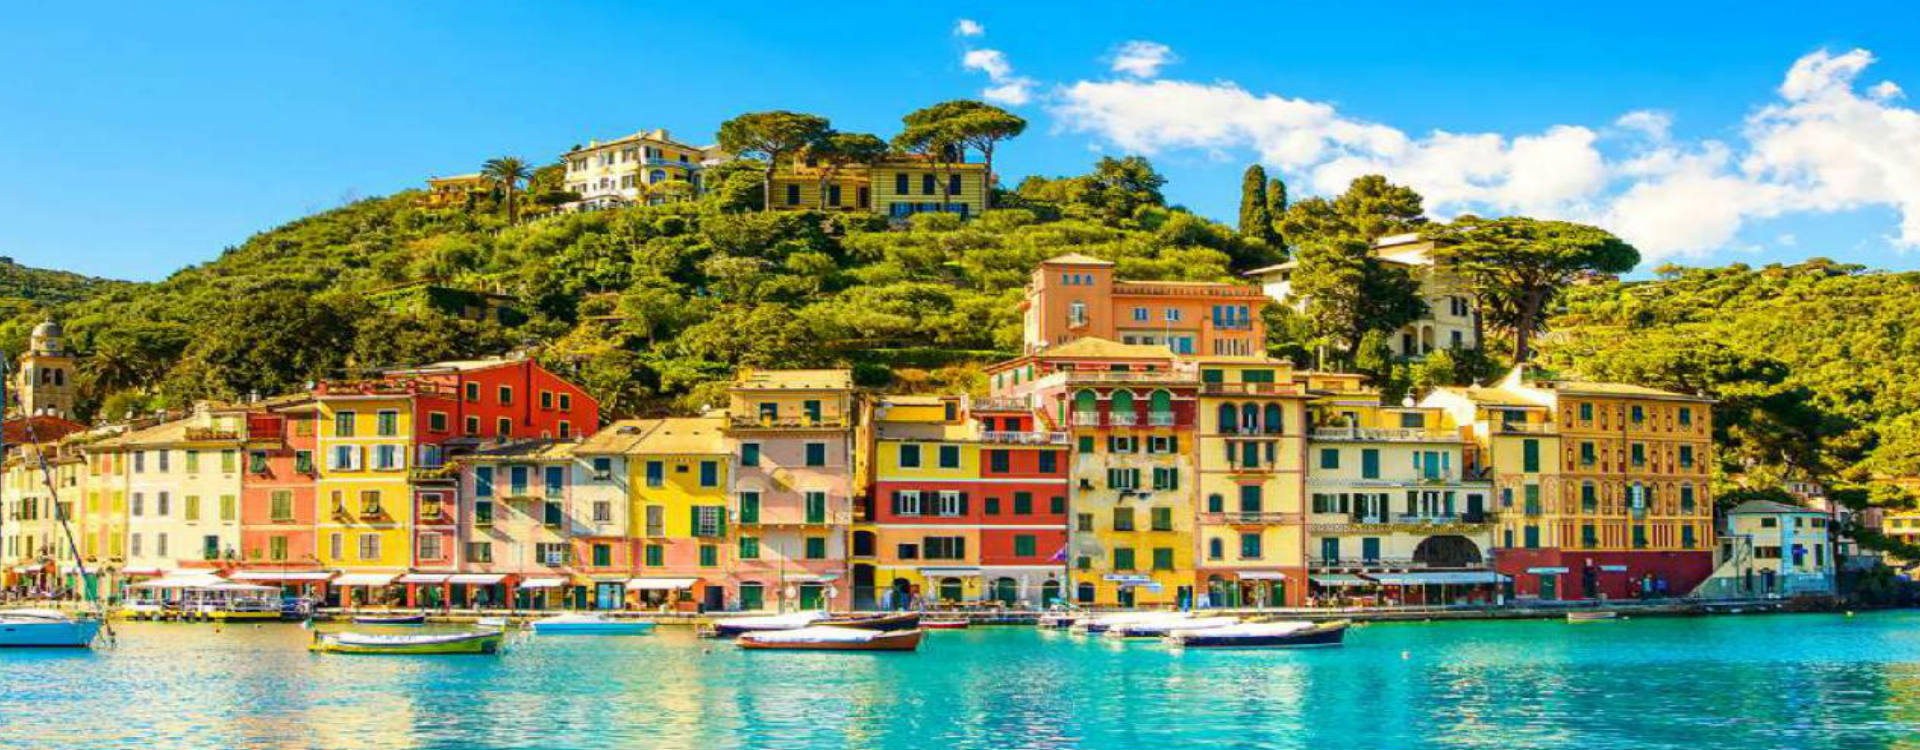 Portofino Shore Excursion - Private Tour